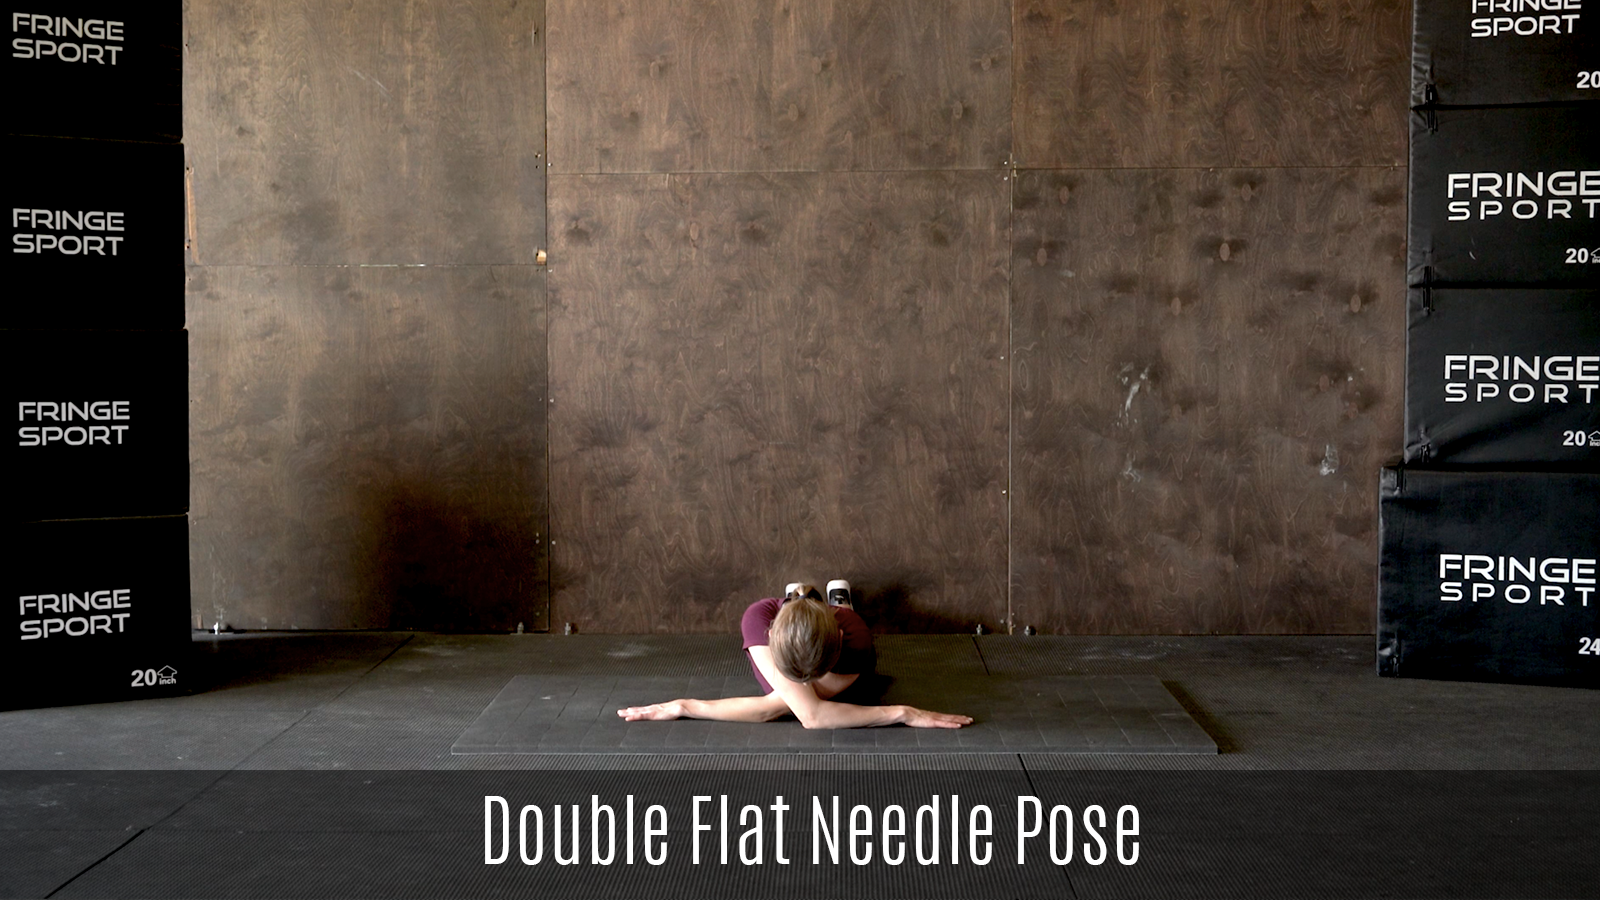 double flat needle pose demo